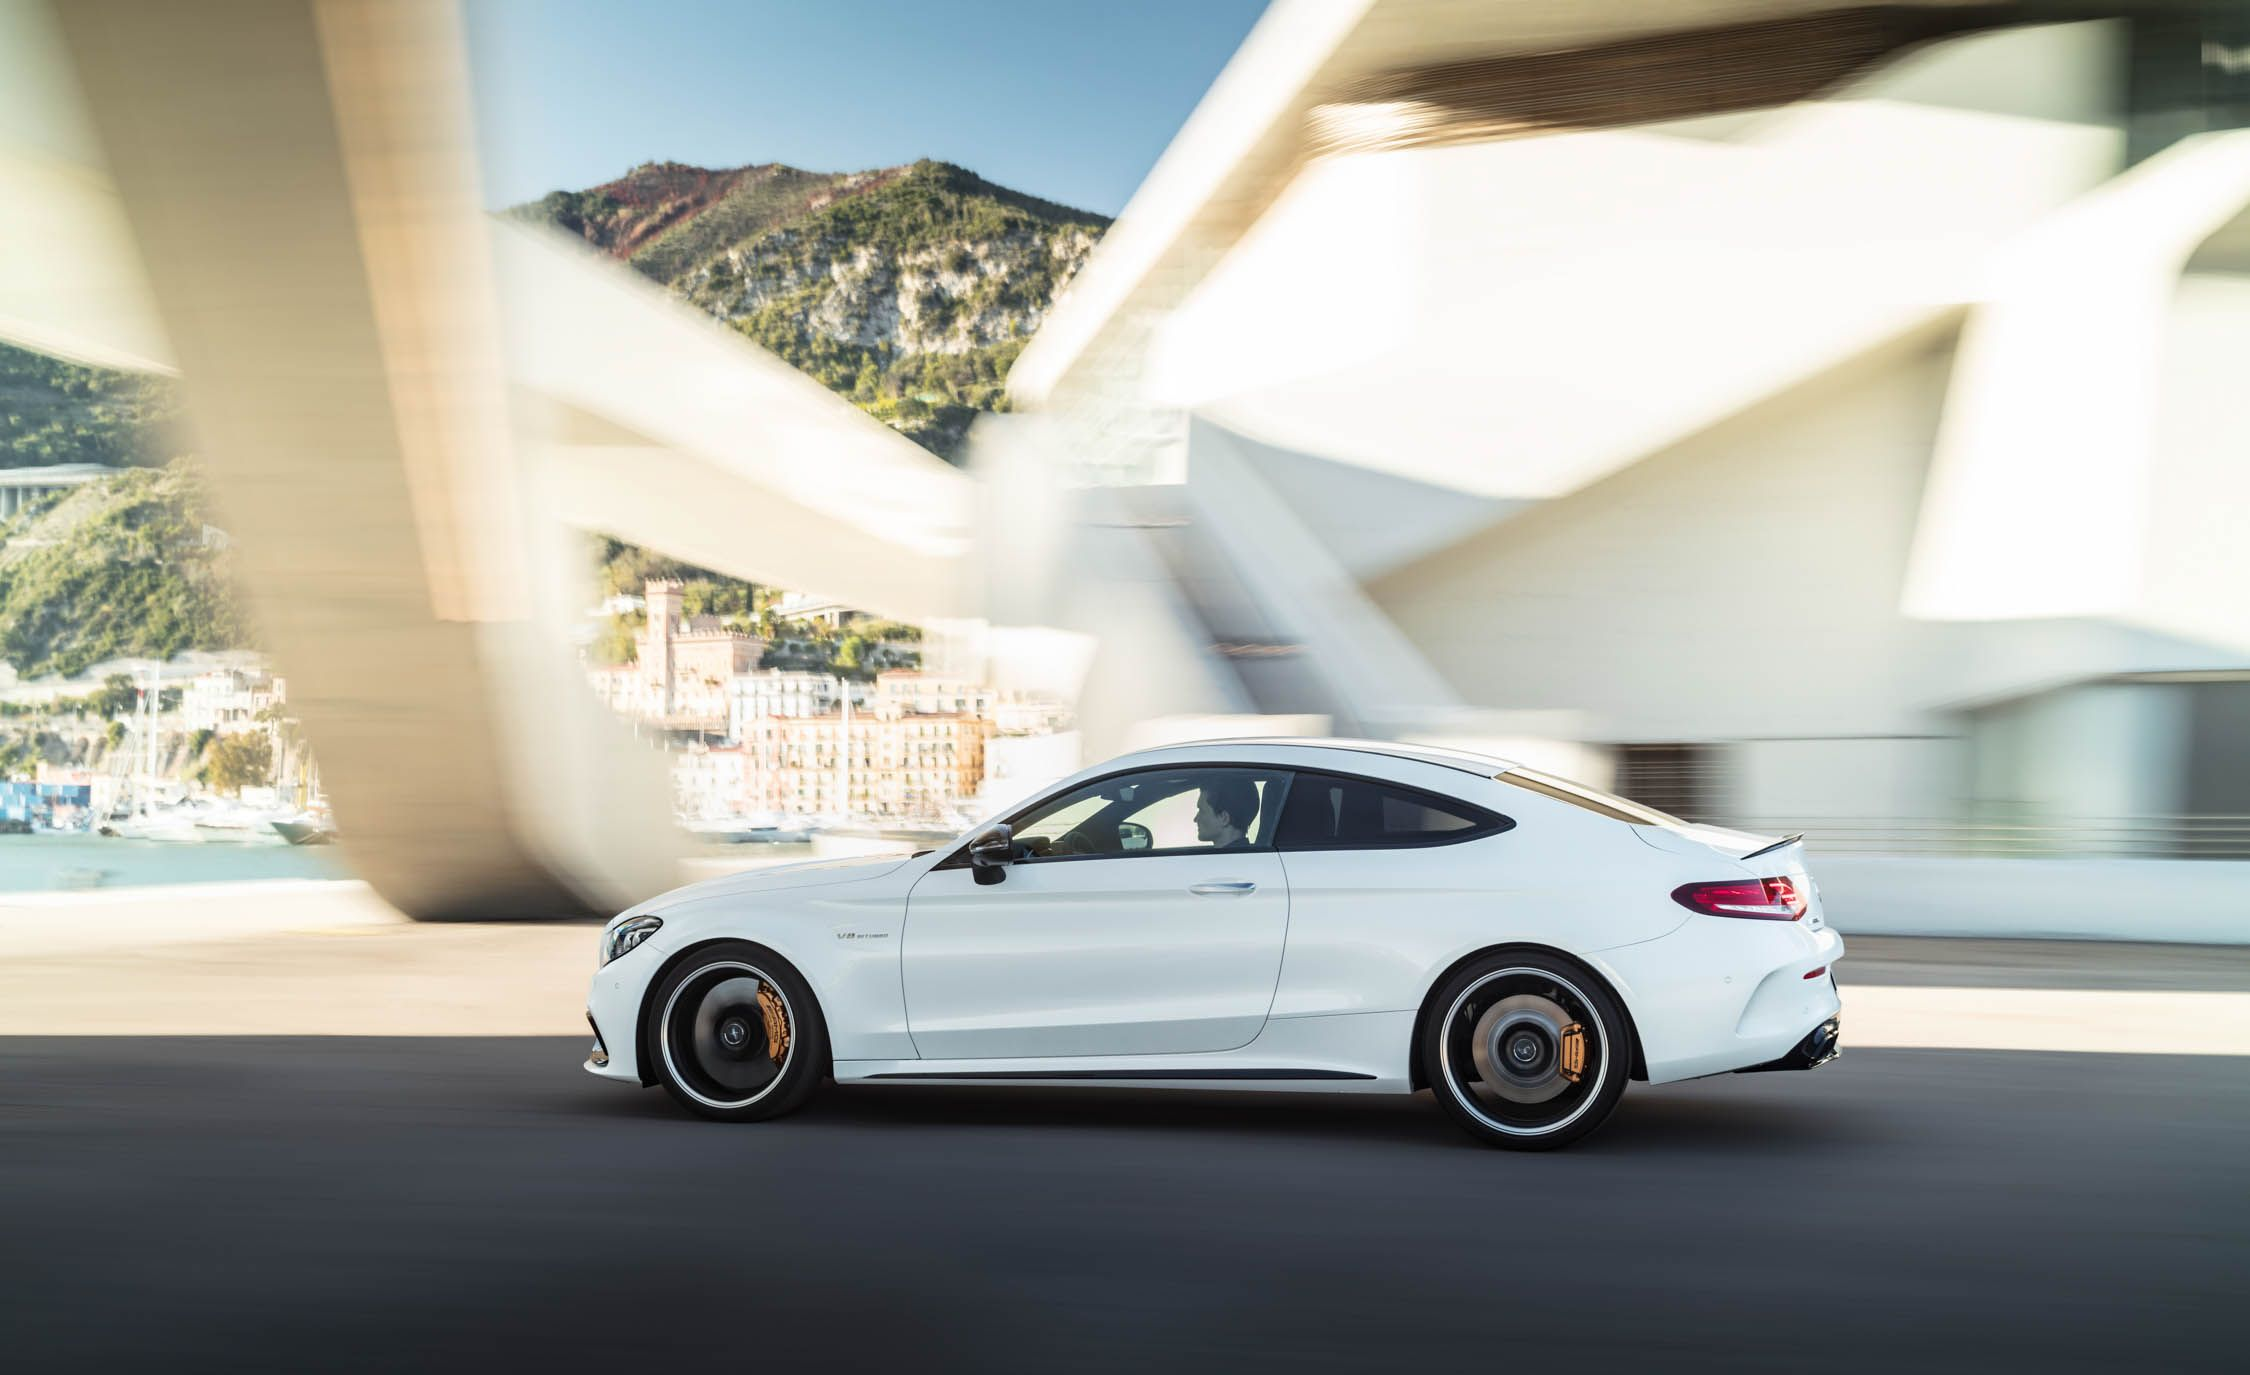 2019 Mercedes-AMG C 63 S coupe Photo Gallery